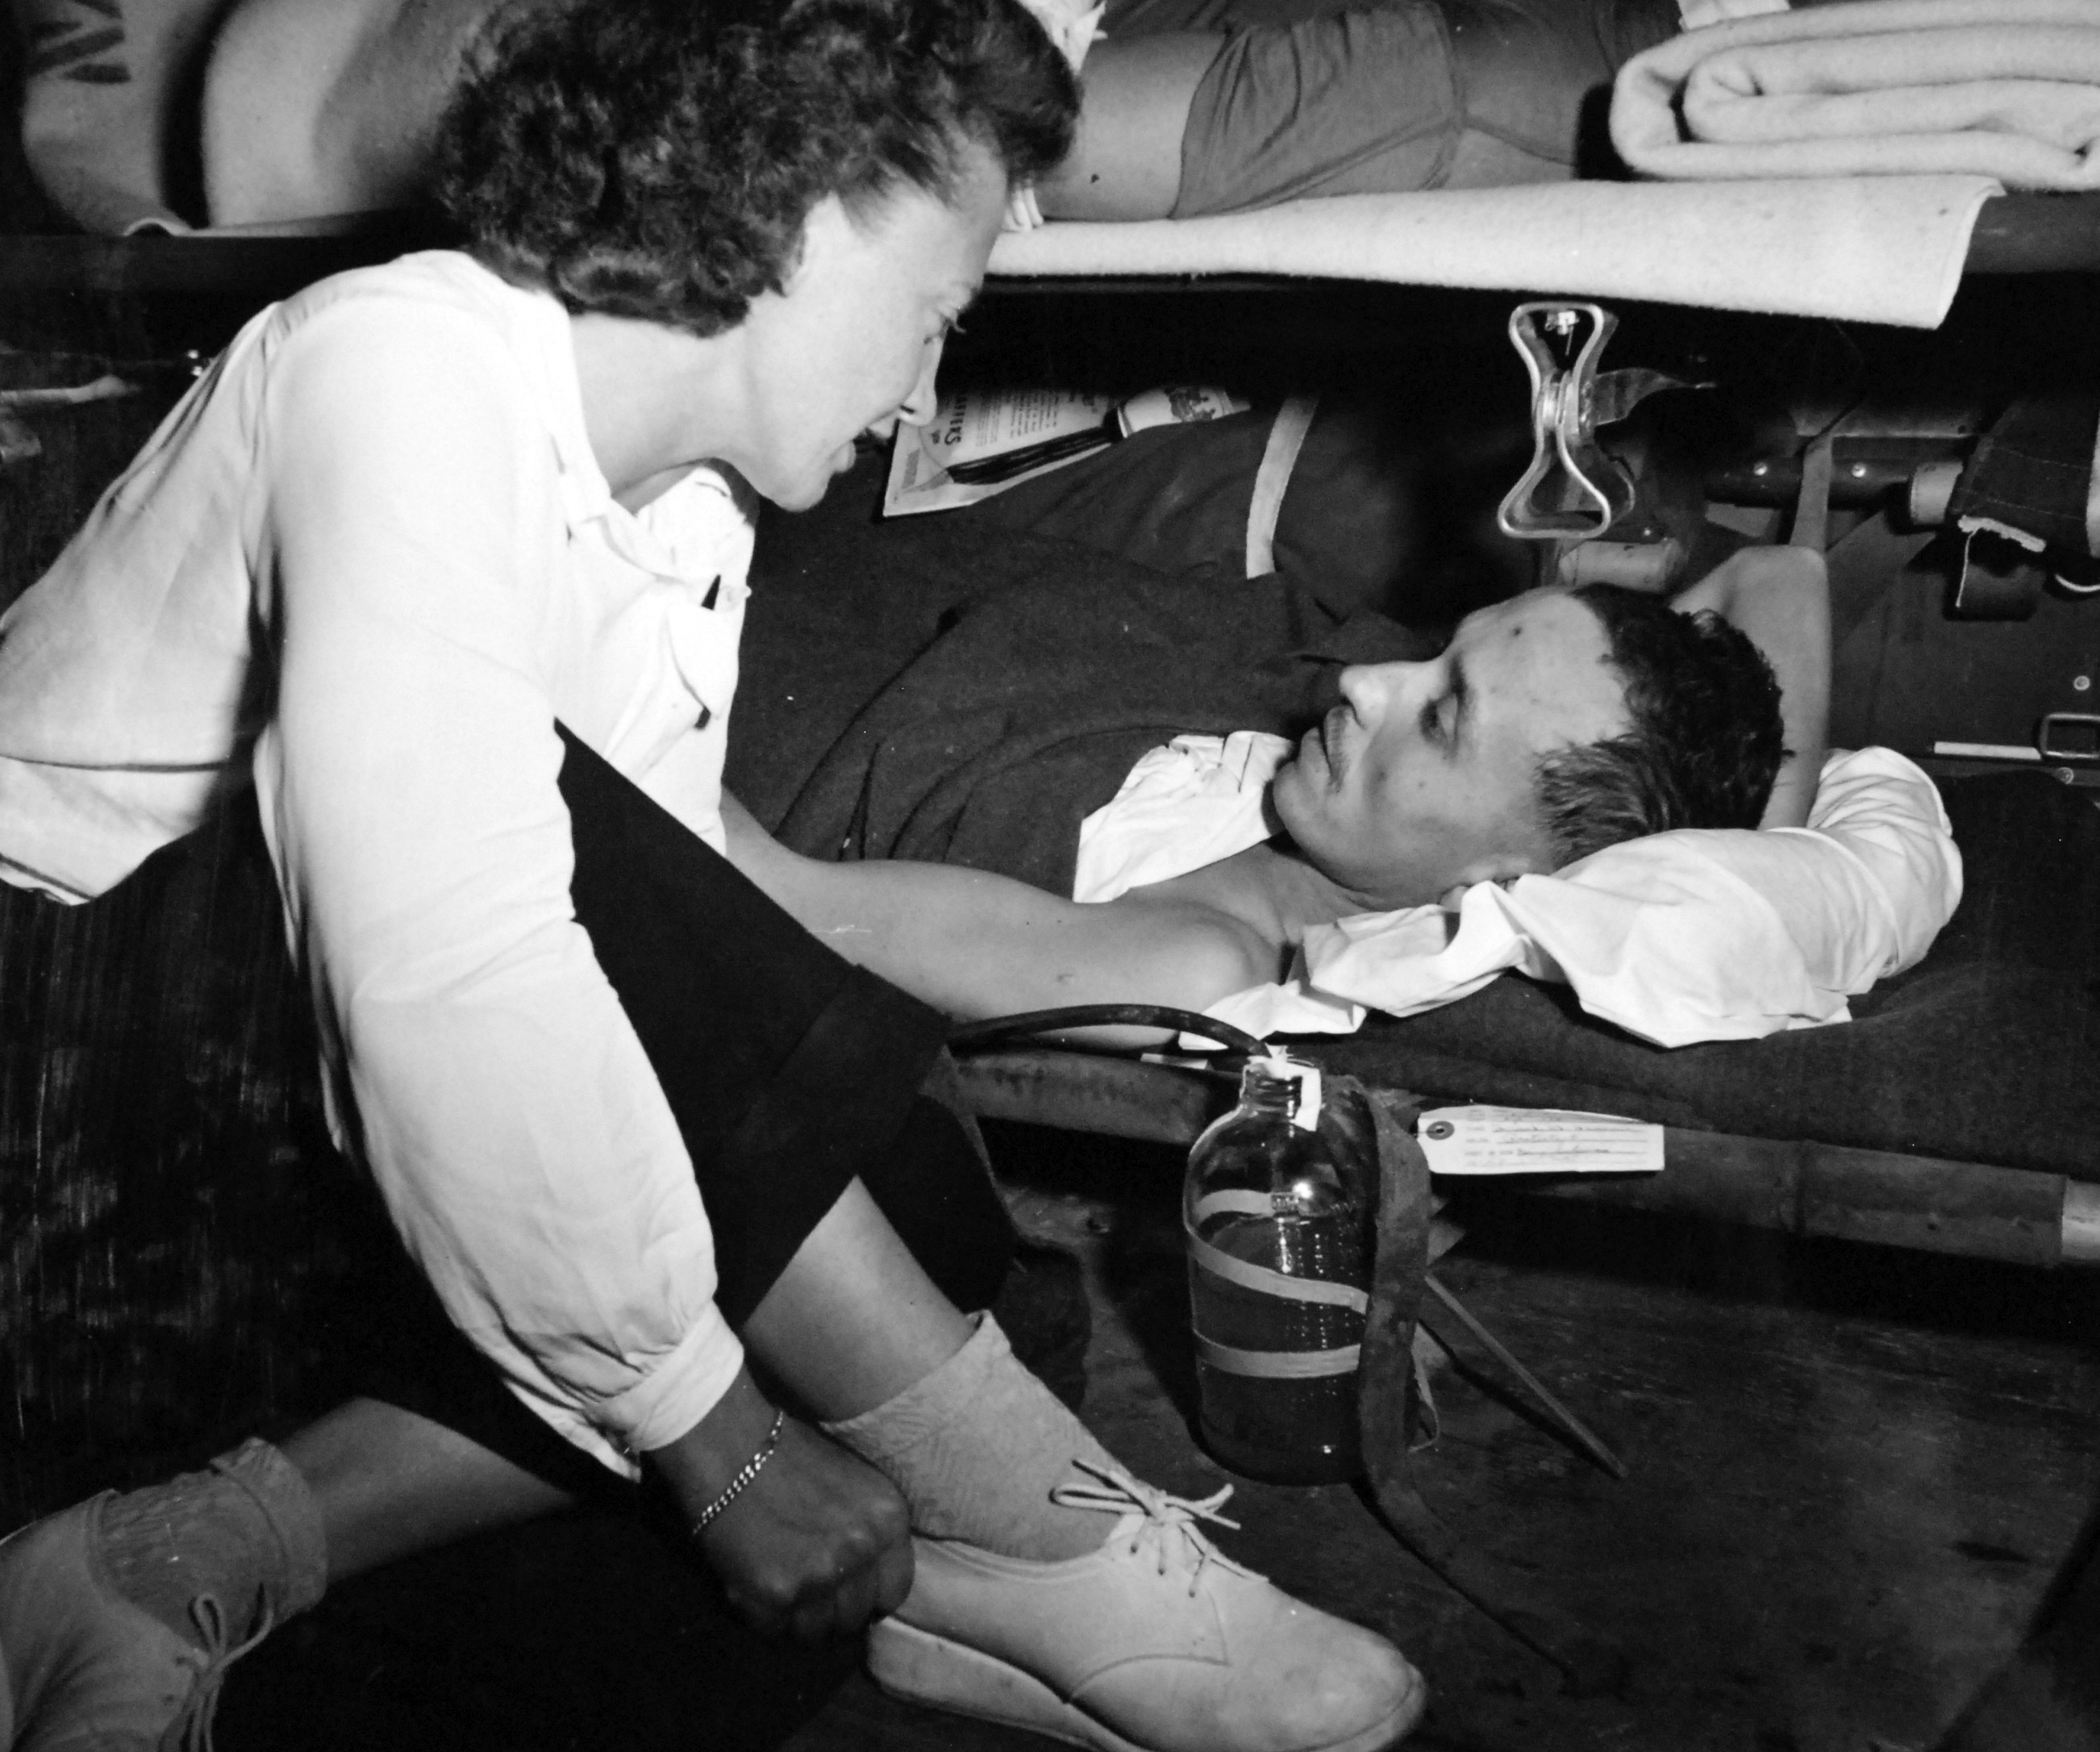 Navy Nurse Comforts Patient During Air Evacuation